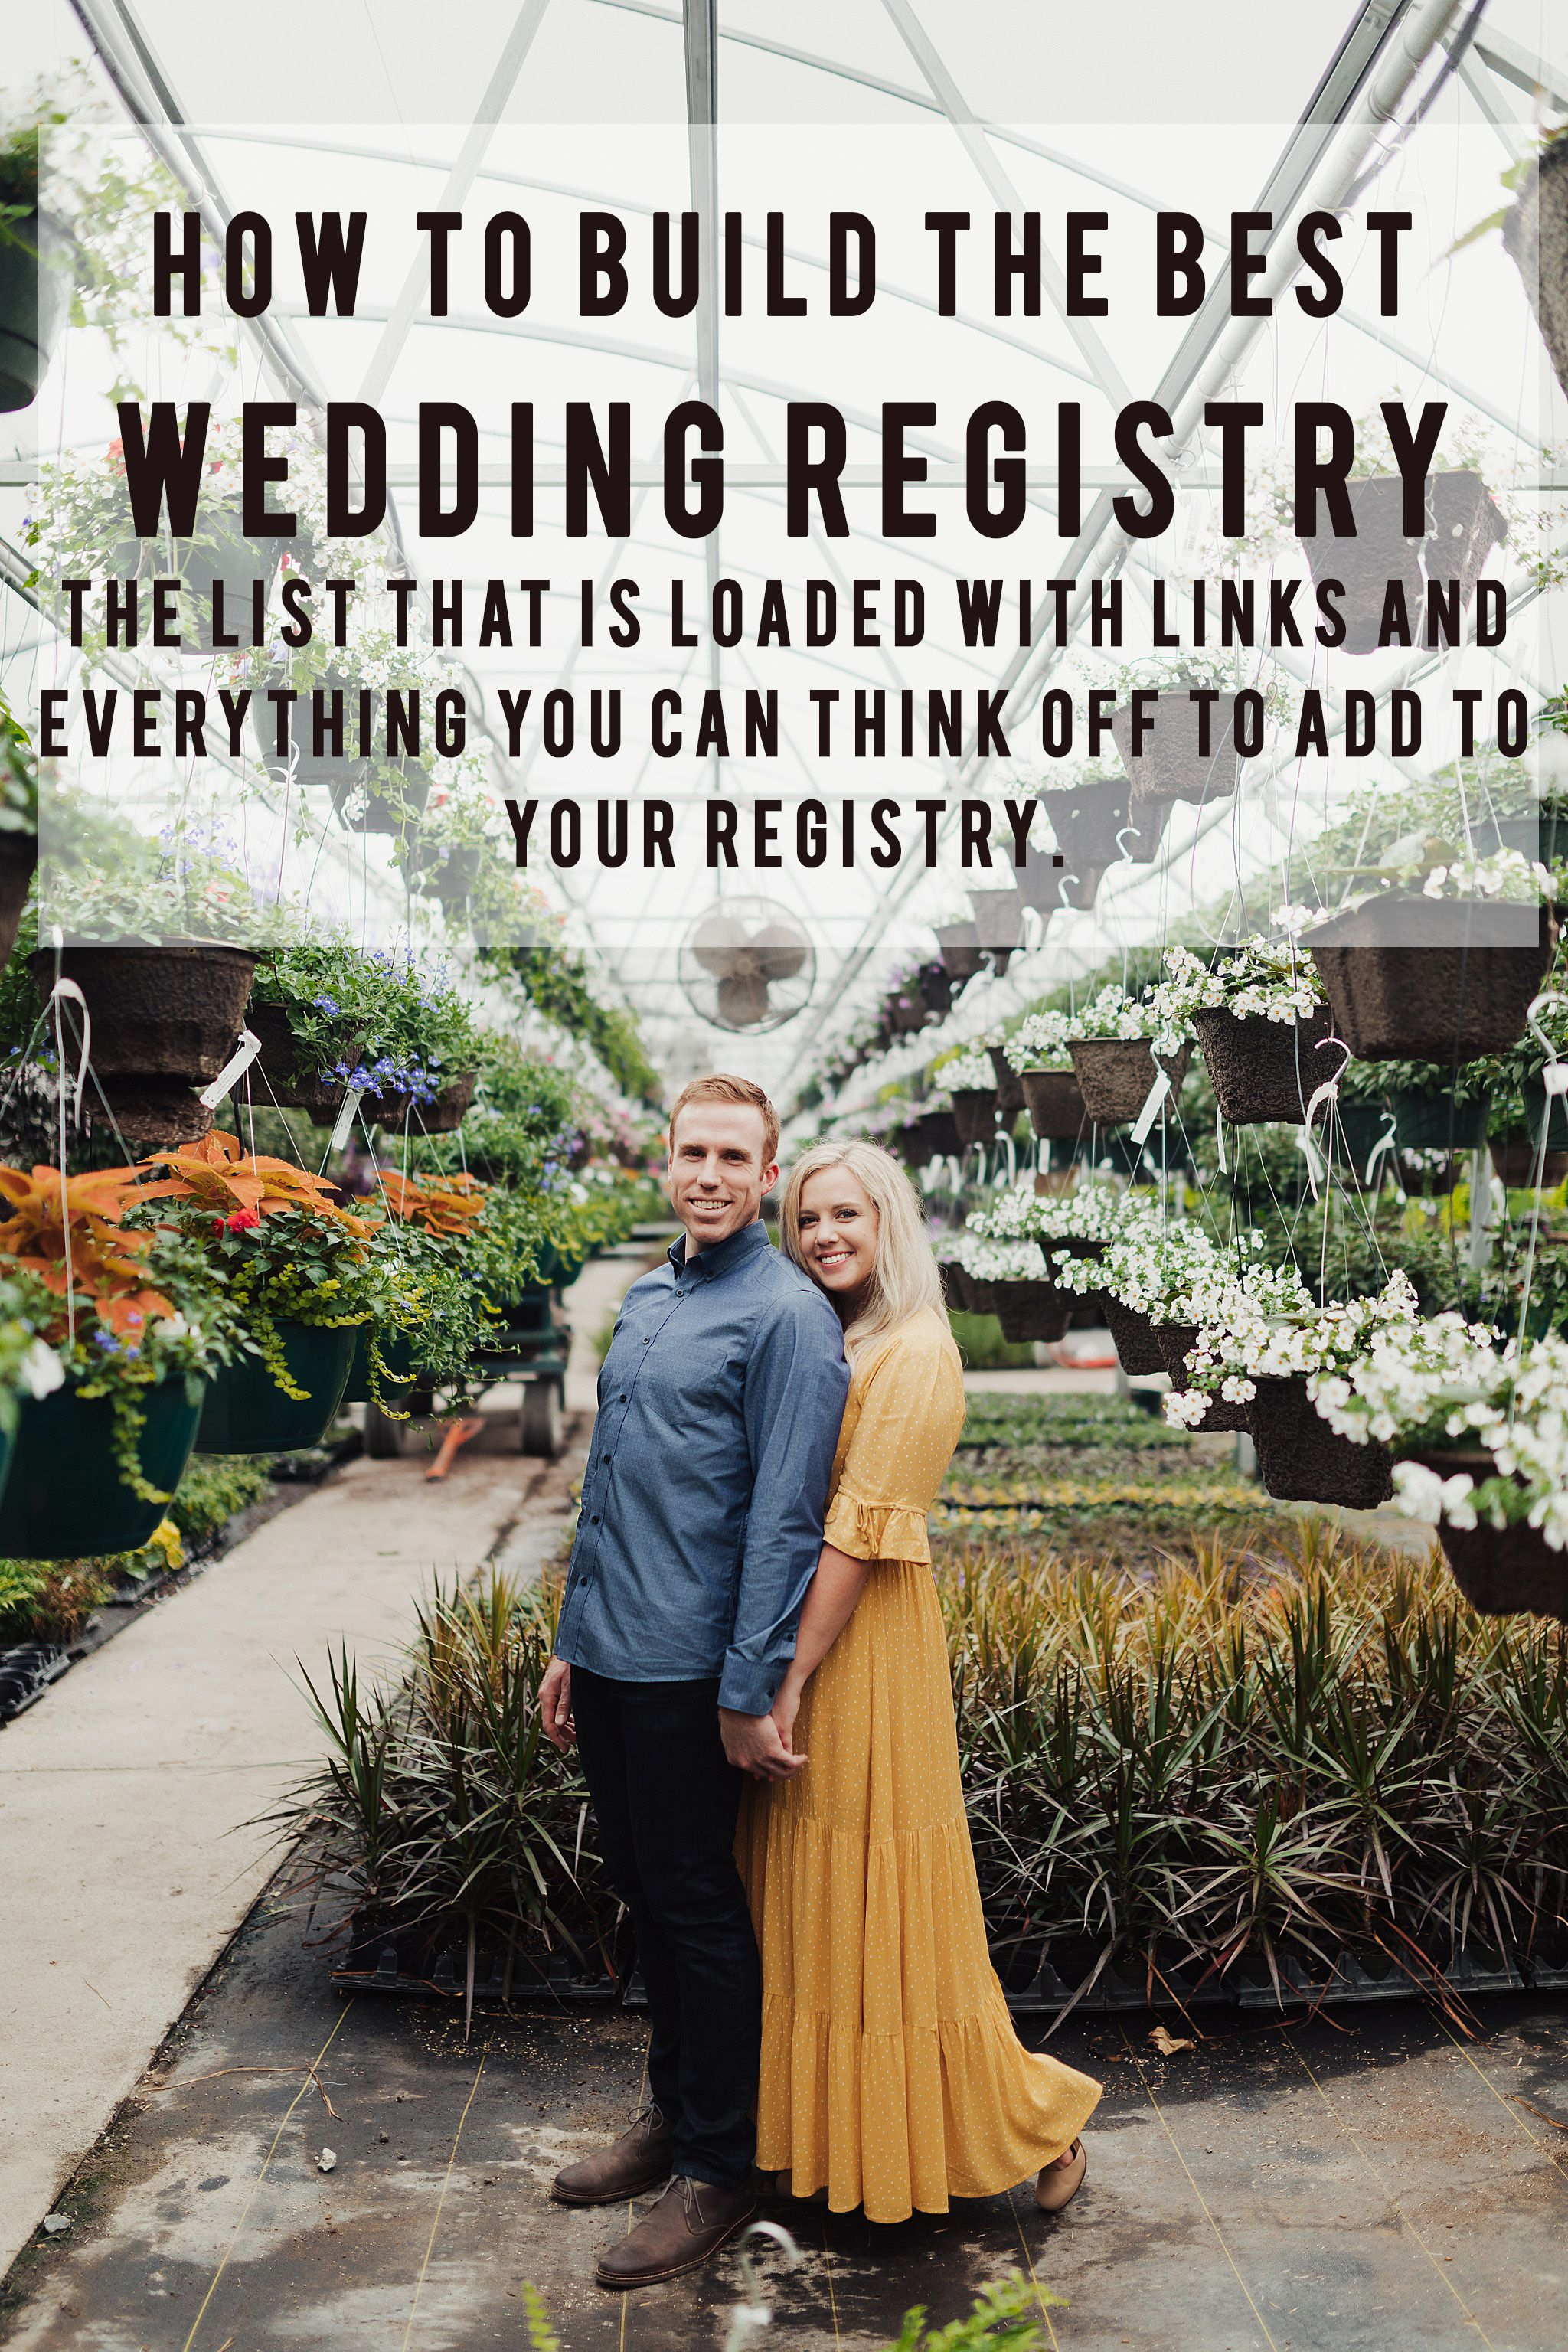 Wedding Registry Guide Everything You Should Have on